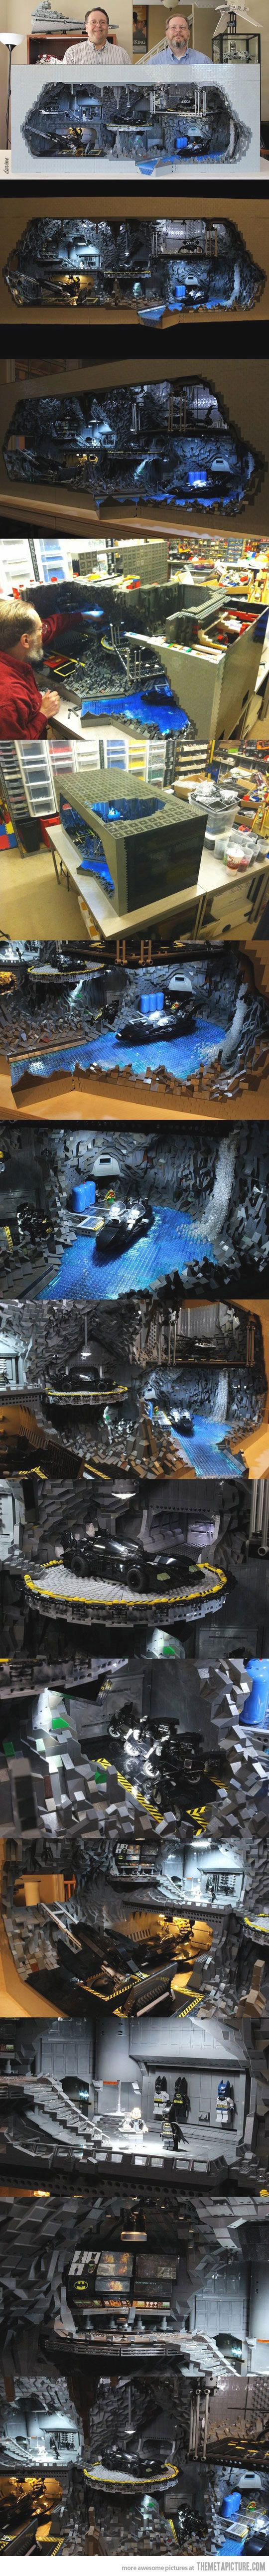 WOW This is amazing! LEGO Batcave - 20,000 LEGO pieces